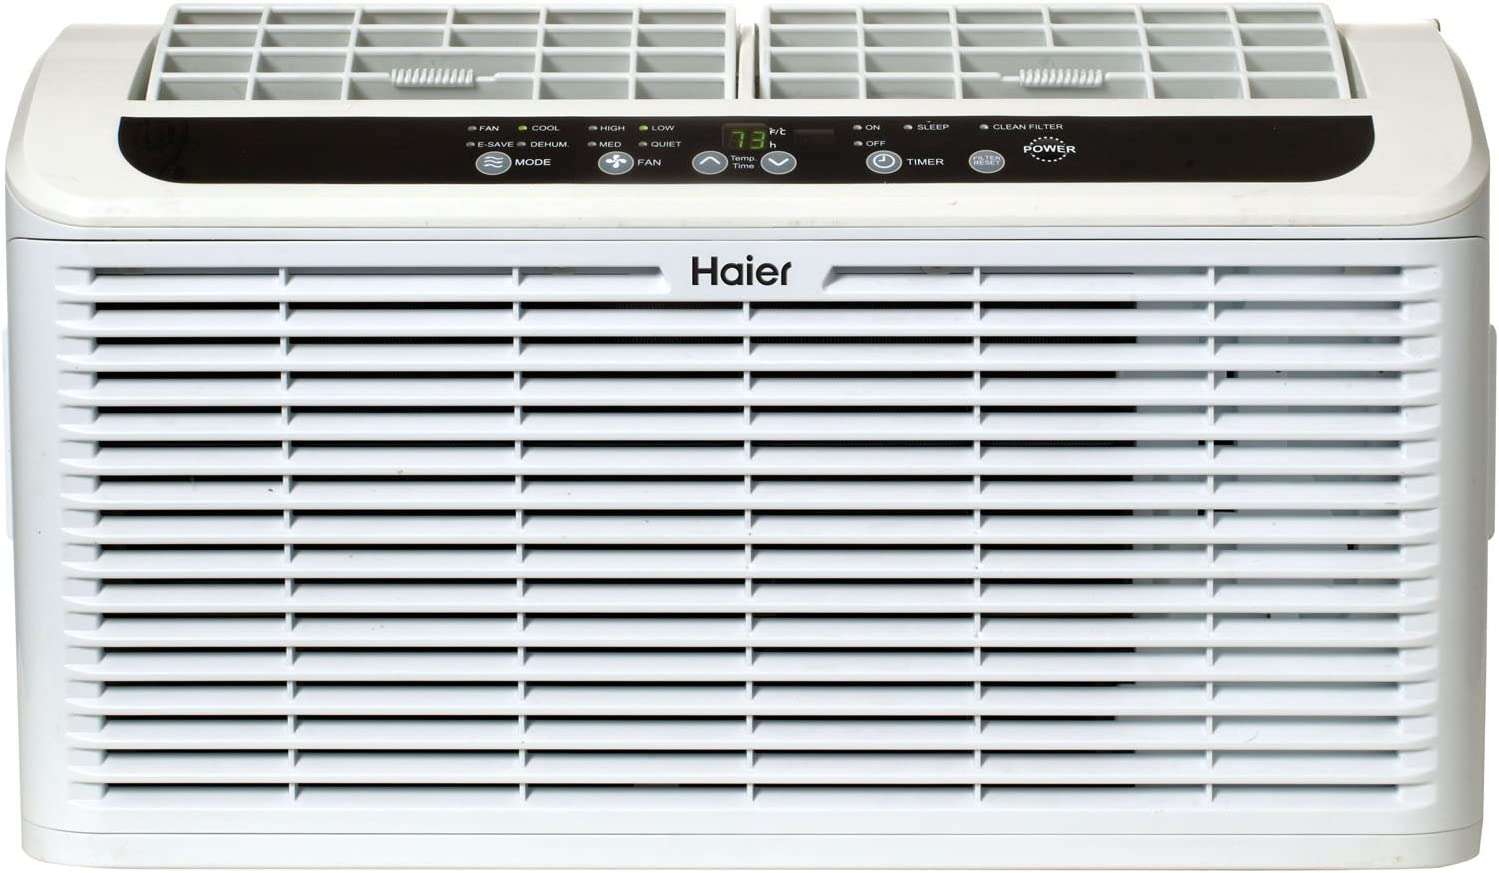 Haier ESAQ406P Serenity Series 6050 BTU 115V Window Air Conditioner with LED Remote Control